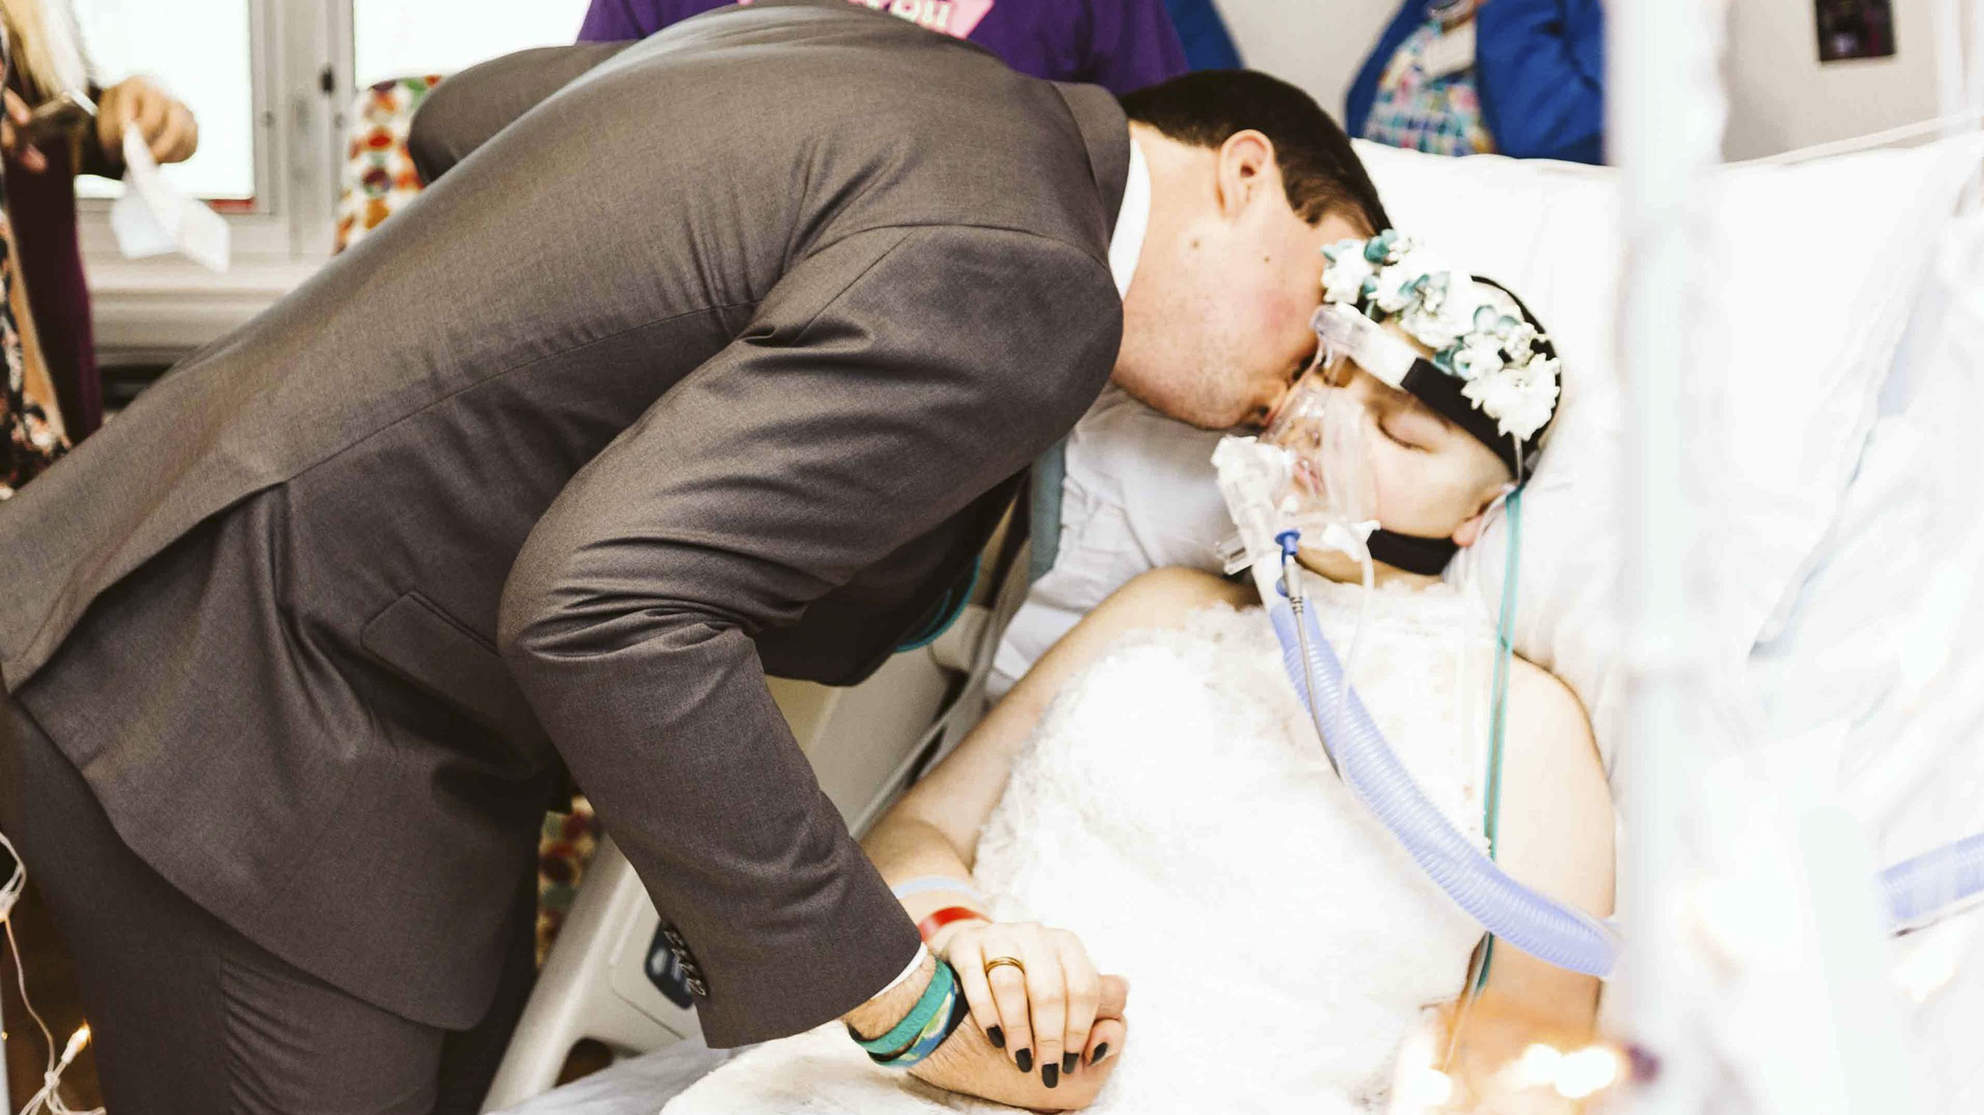 Bride, 19, Marries Husband from Her Hospital Bed Just Days Before Dying